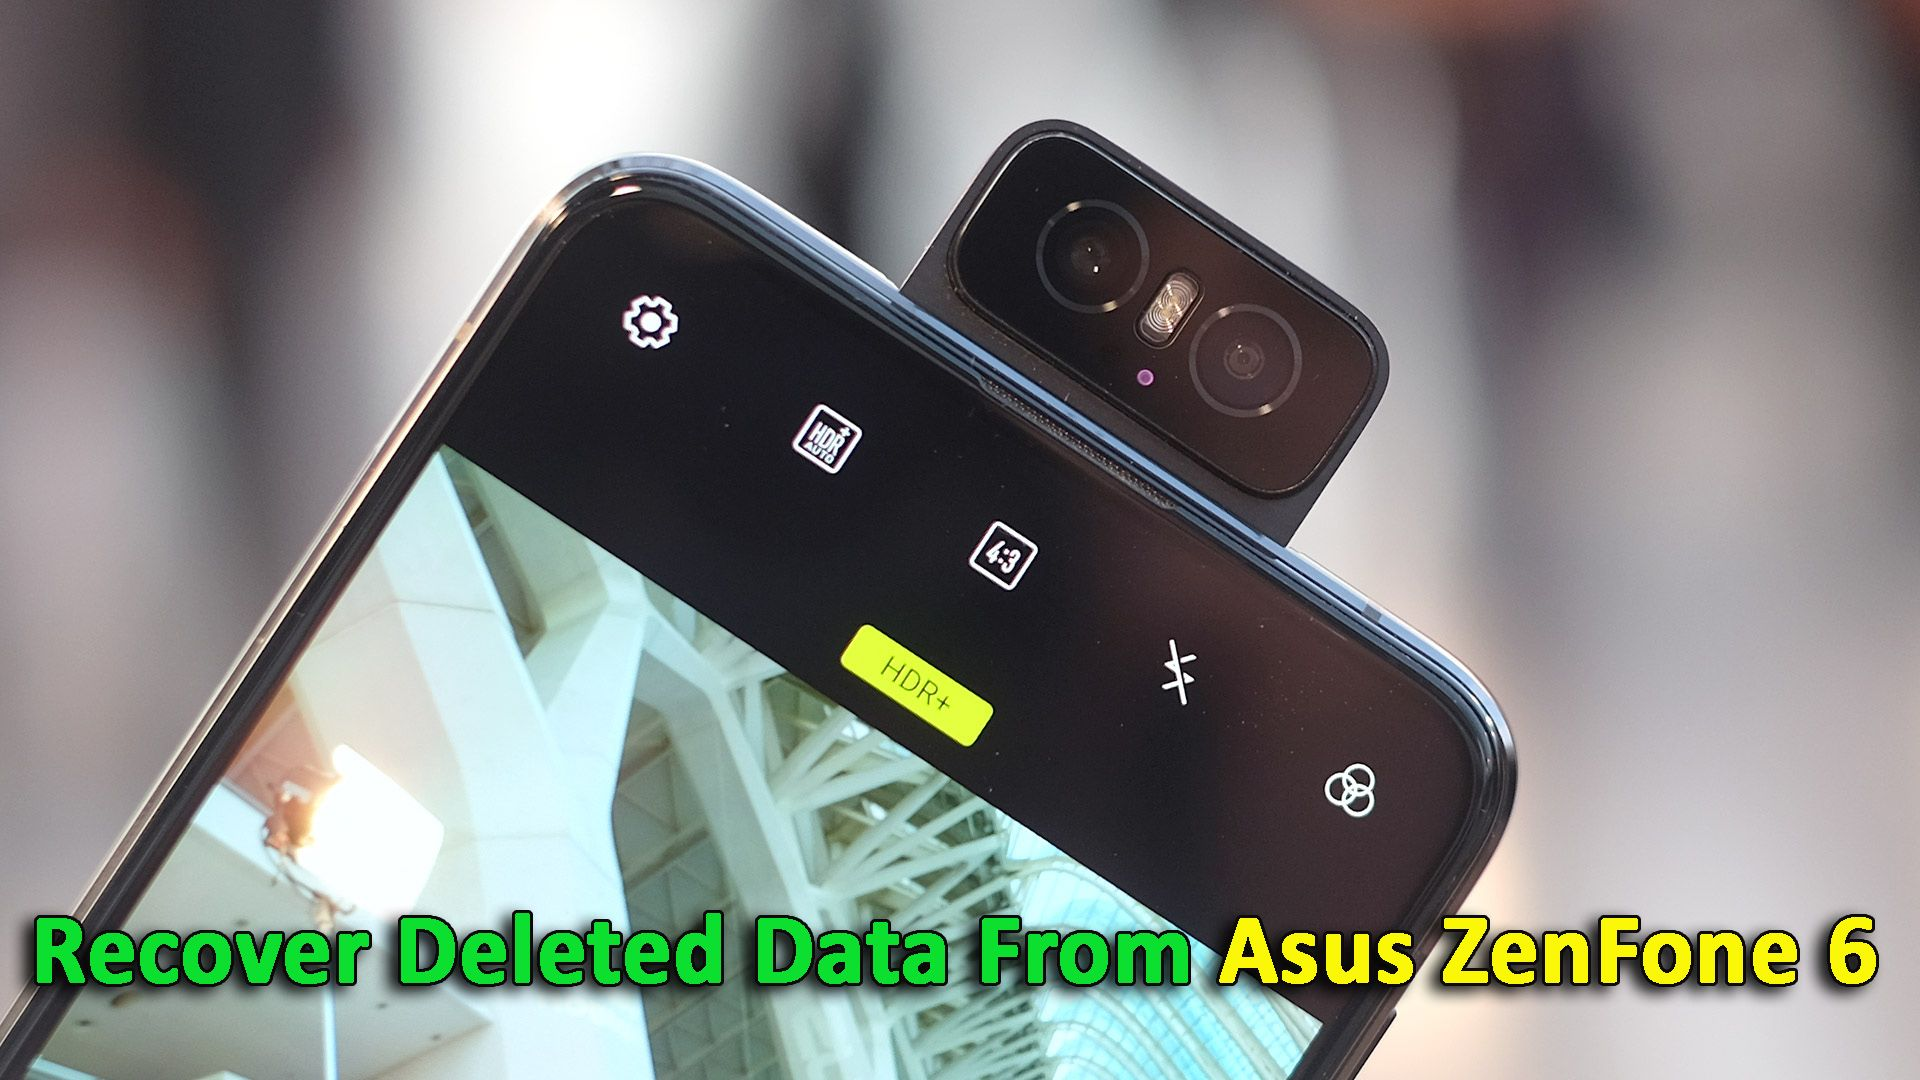 4 Ways To Recover Deleted Data From Asus Zenfone 6 With Images